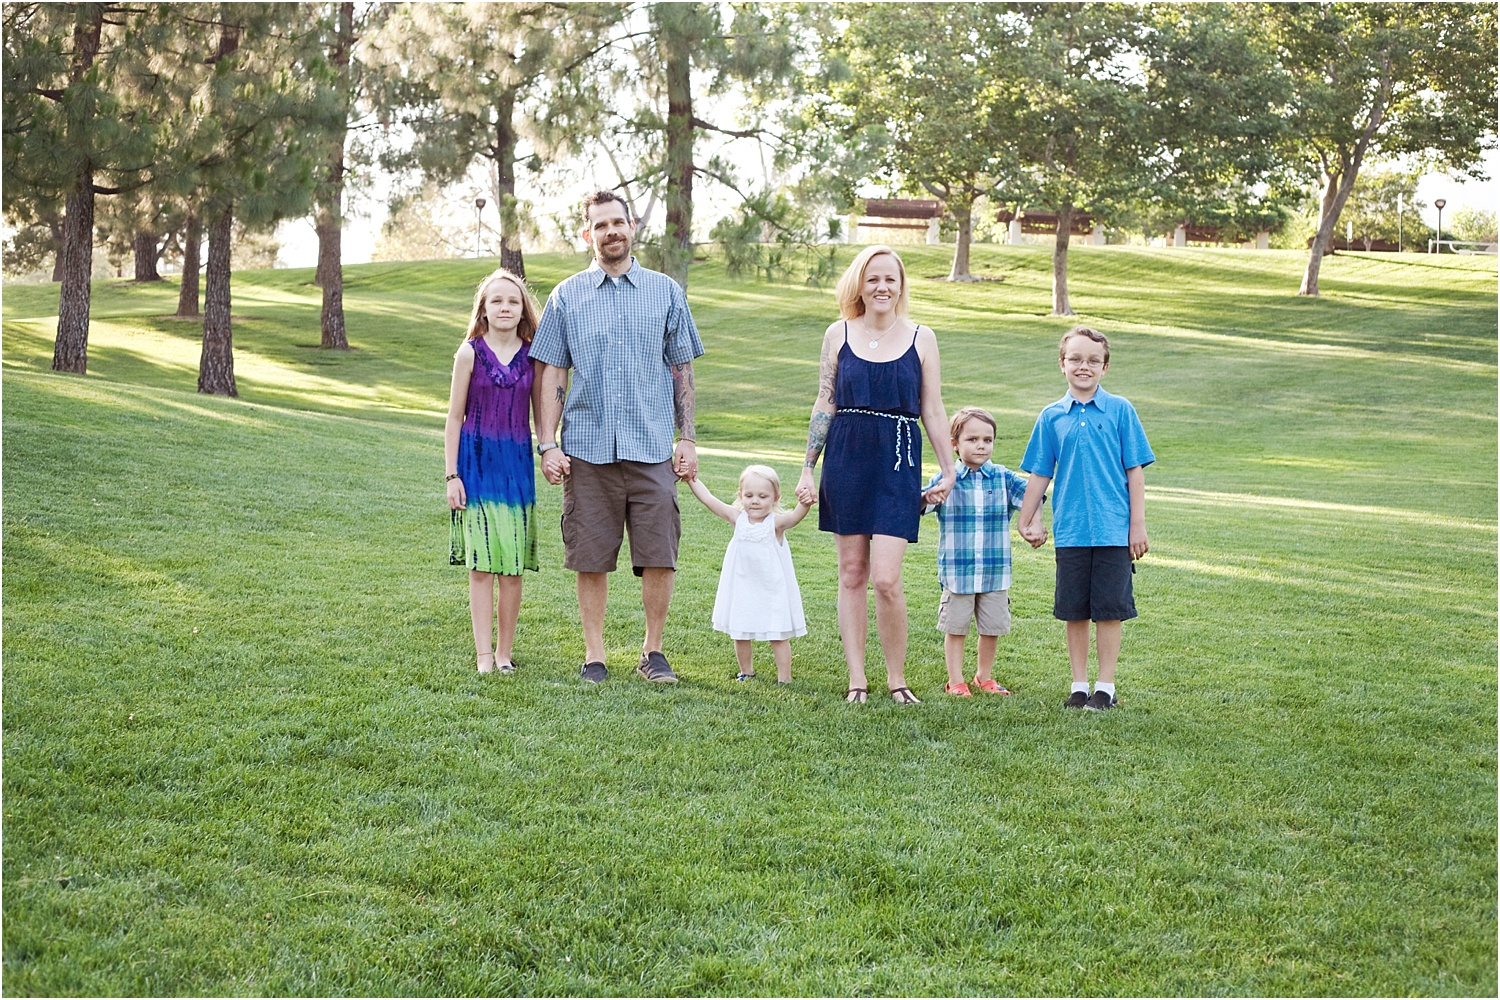 Tips for Posing Large Families and Groups - family of 5 with young kids